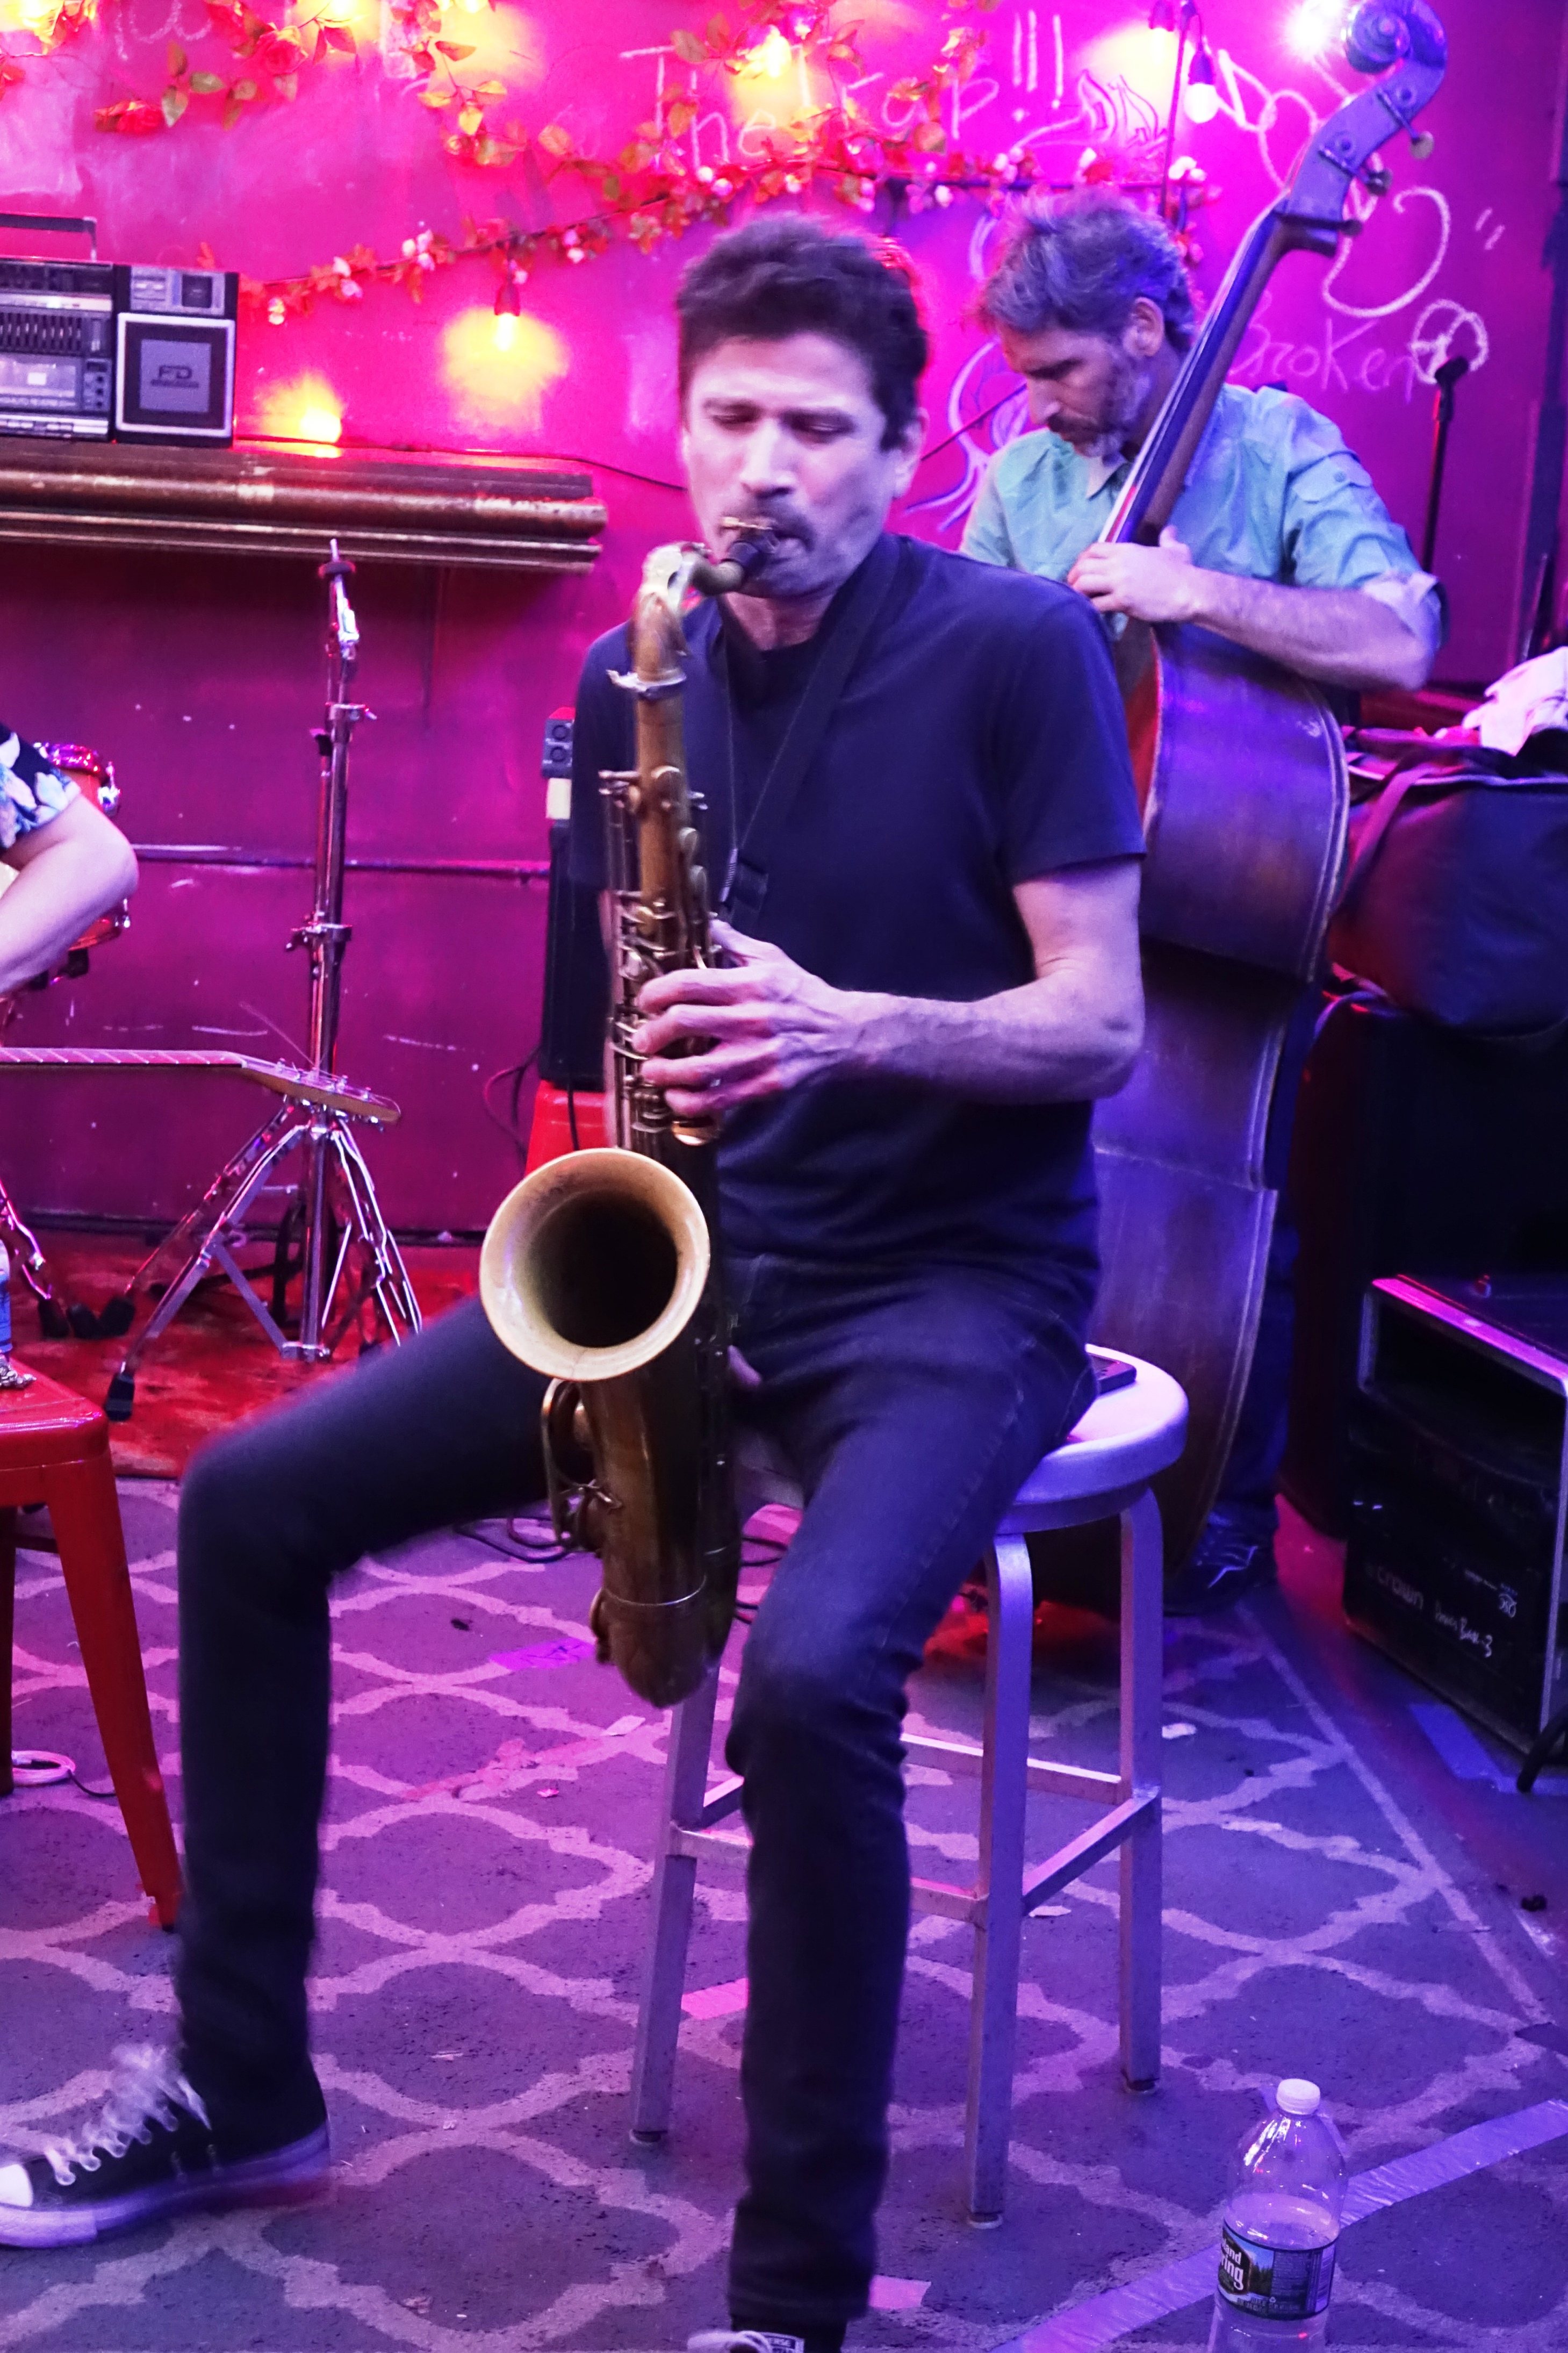 Stephen Gauci and Adam Lane at the Bushwick Public House, Brooklyn in May 2018